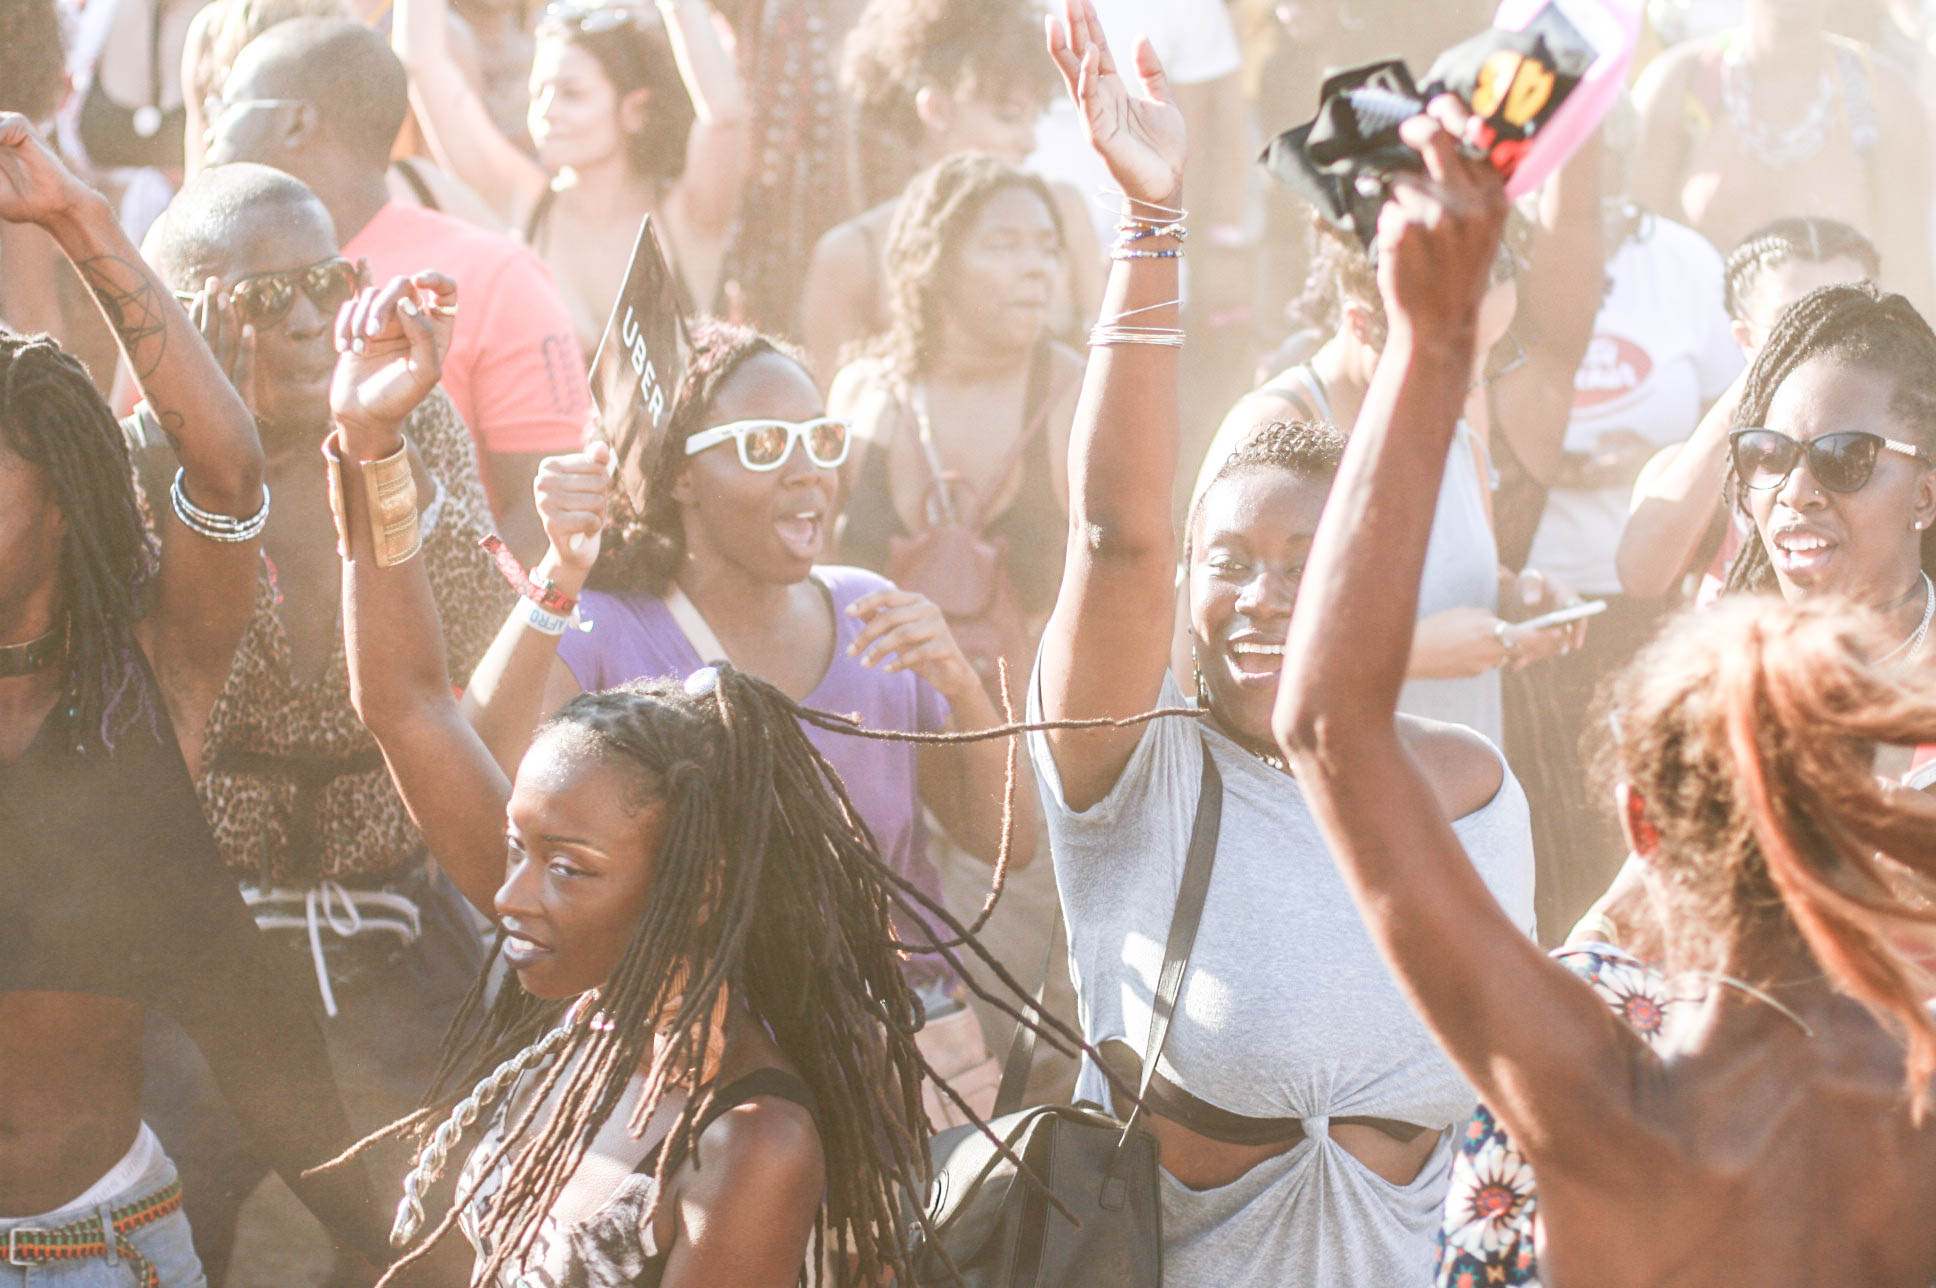 The dancing crowd at the golden stage during @djmoma set at #afropunkfest .